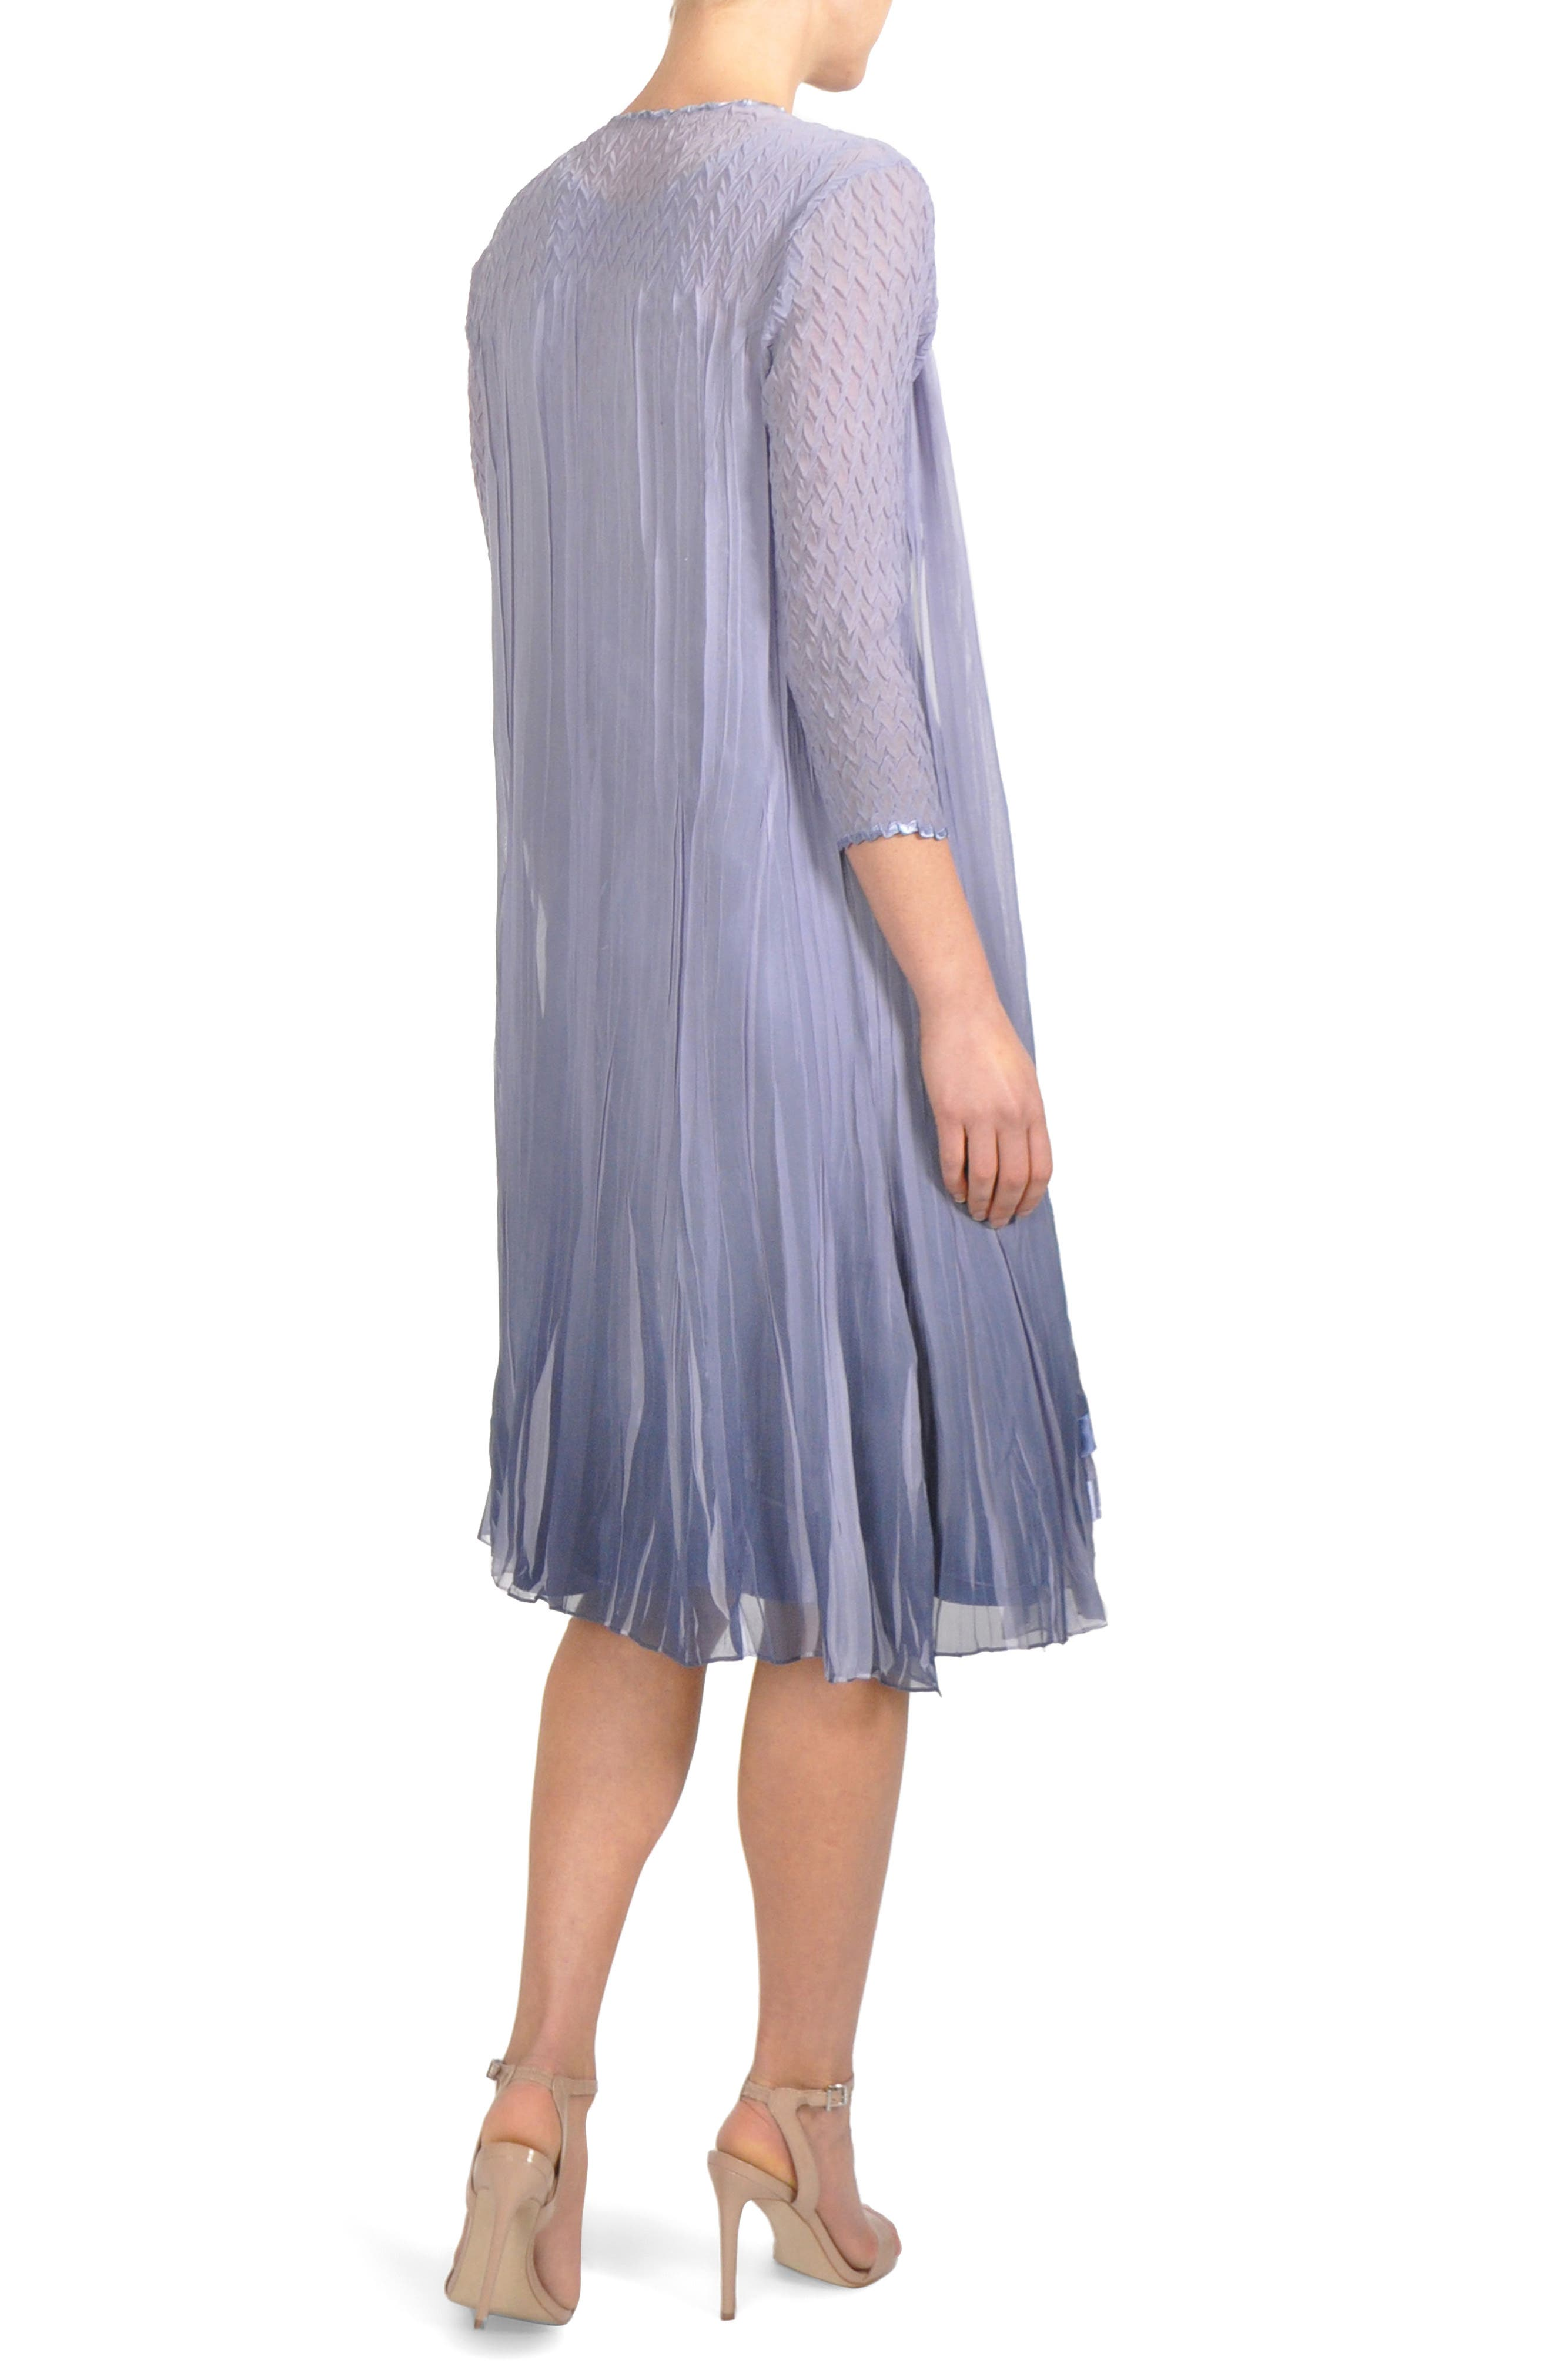 Charmeuse & Chiffon Midi Dress with Jacket,                             Alternate thumbnail 2, color,                             Lavendar Grey Blue Ombre